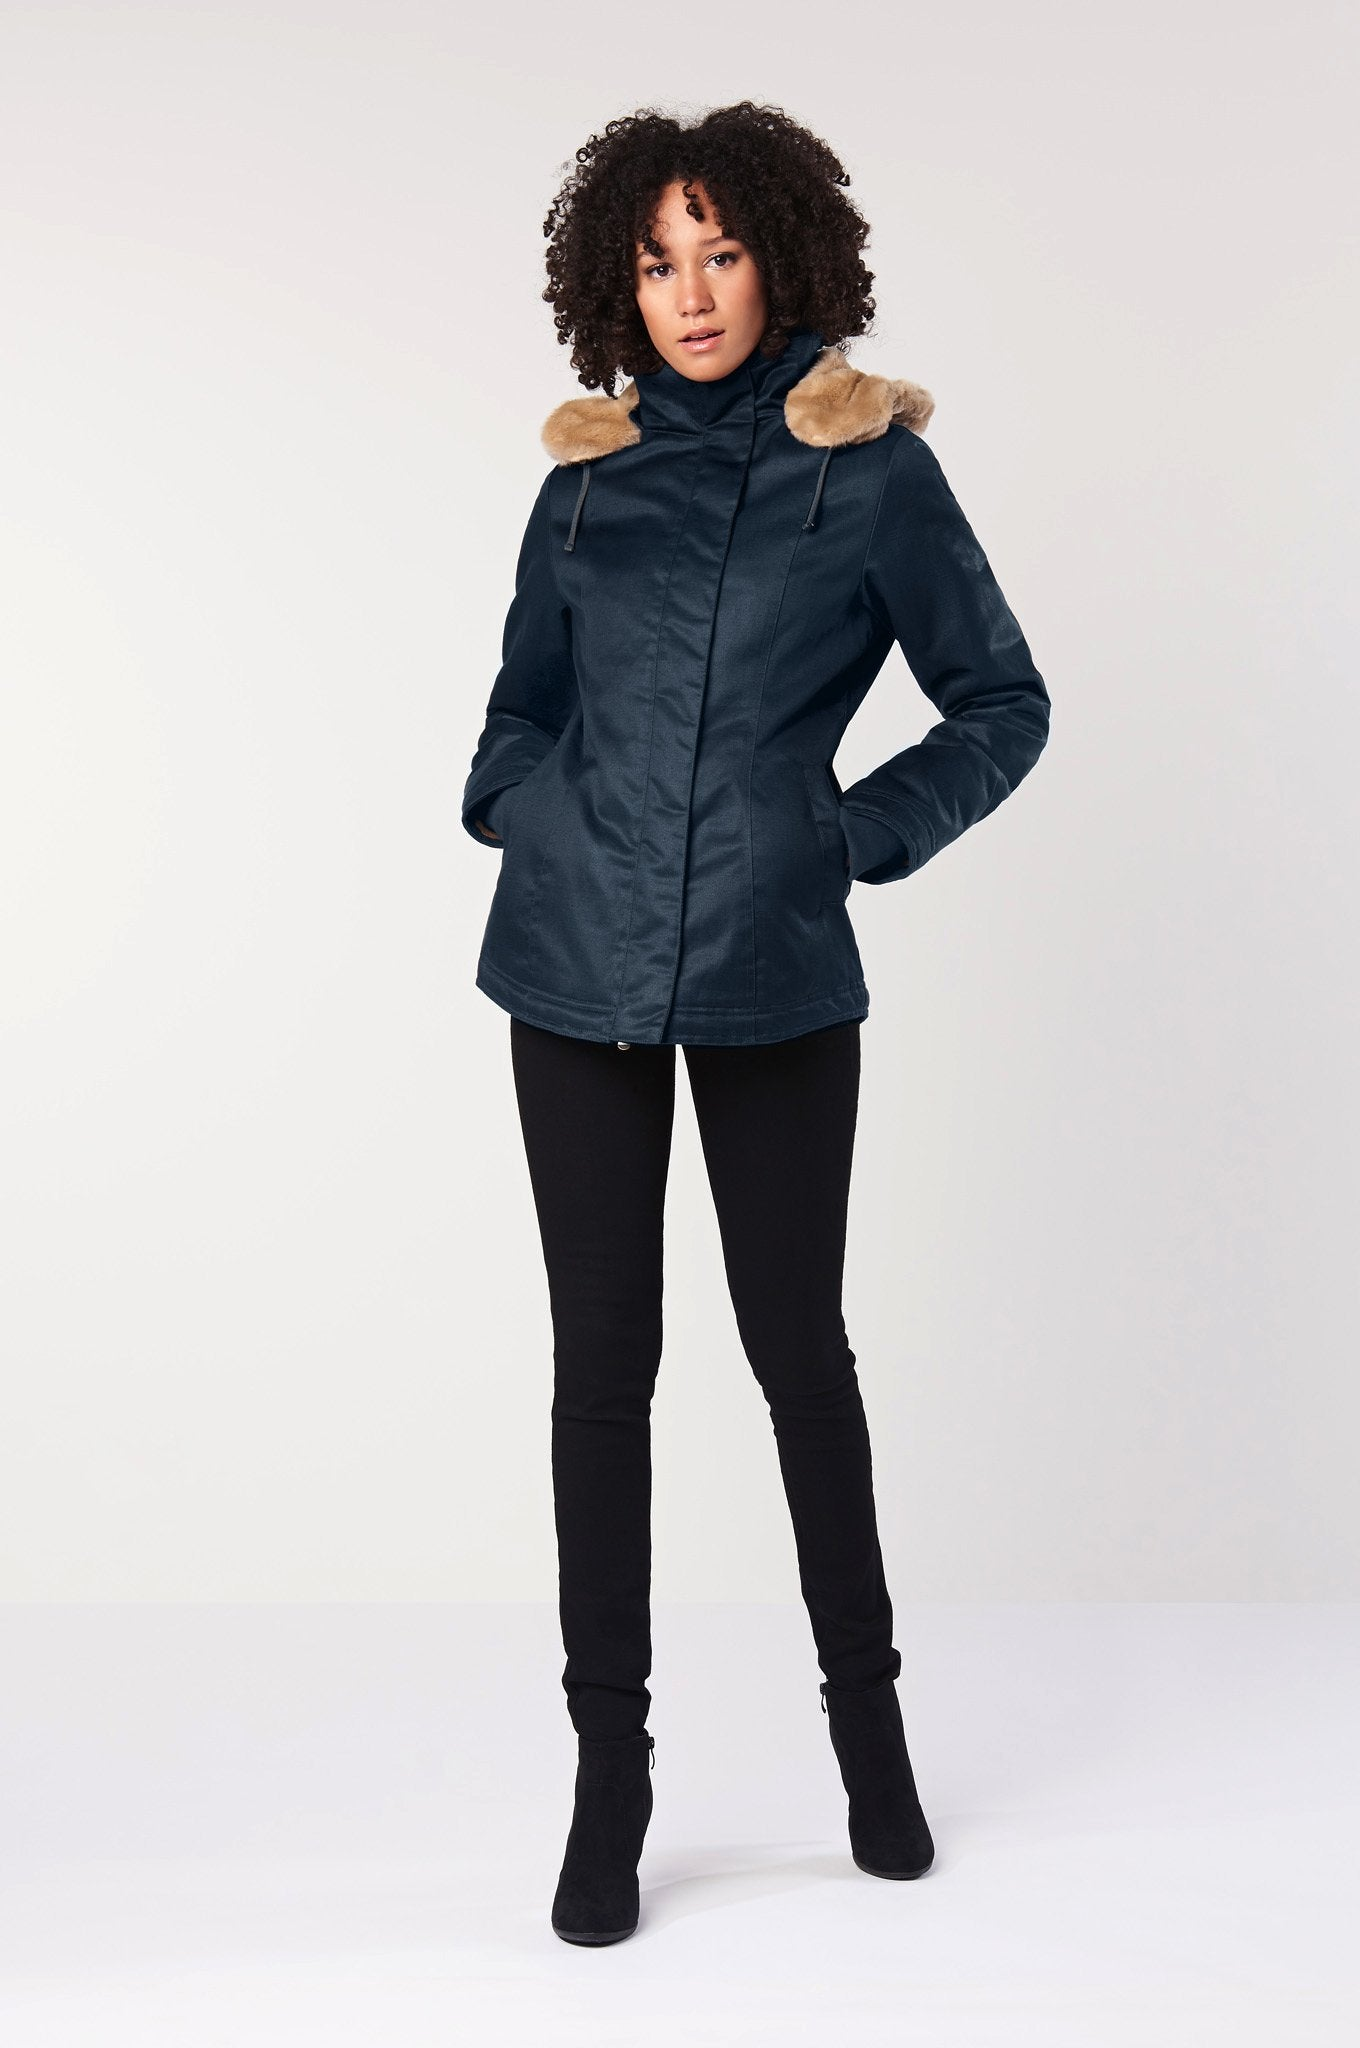 HEMP Vegan Jacket Navy - Komodo Fashion